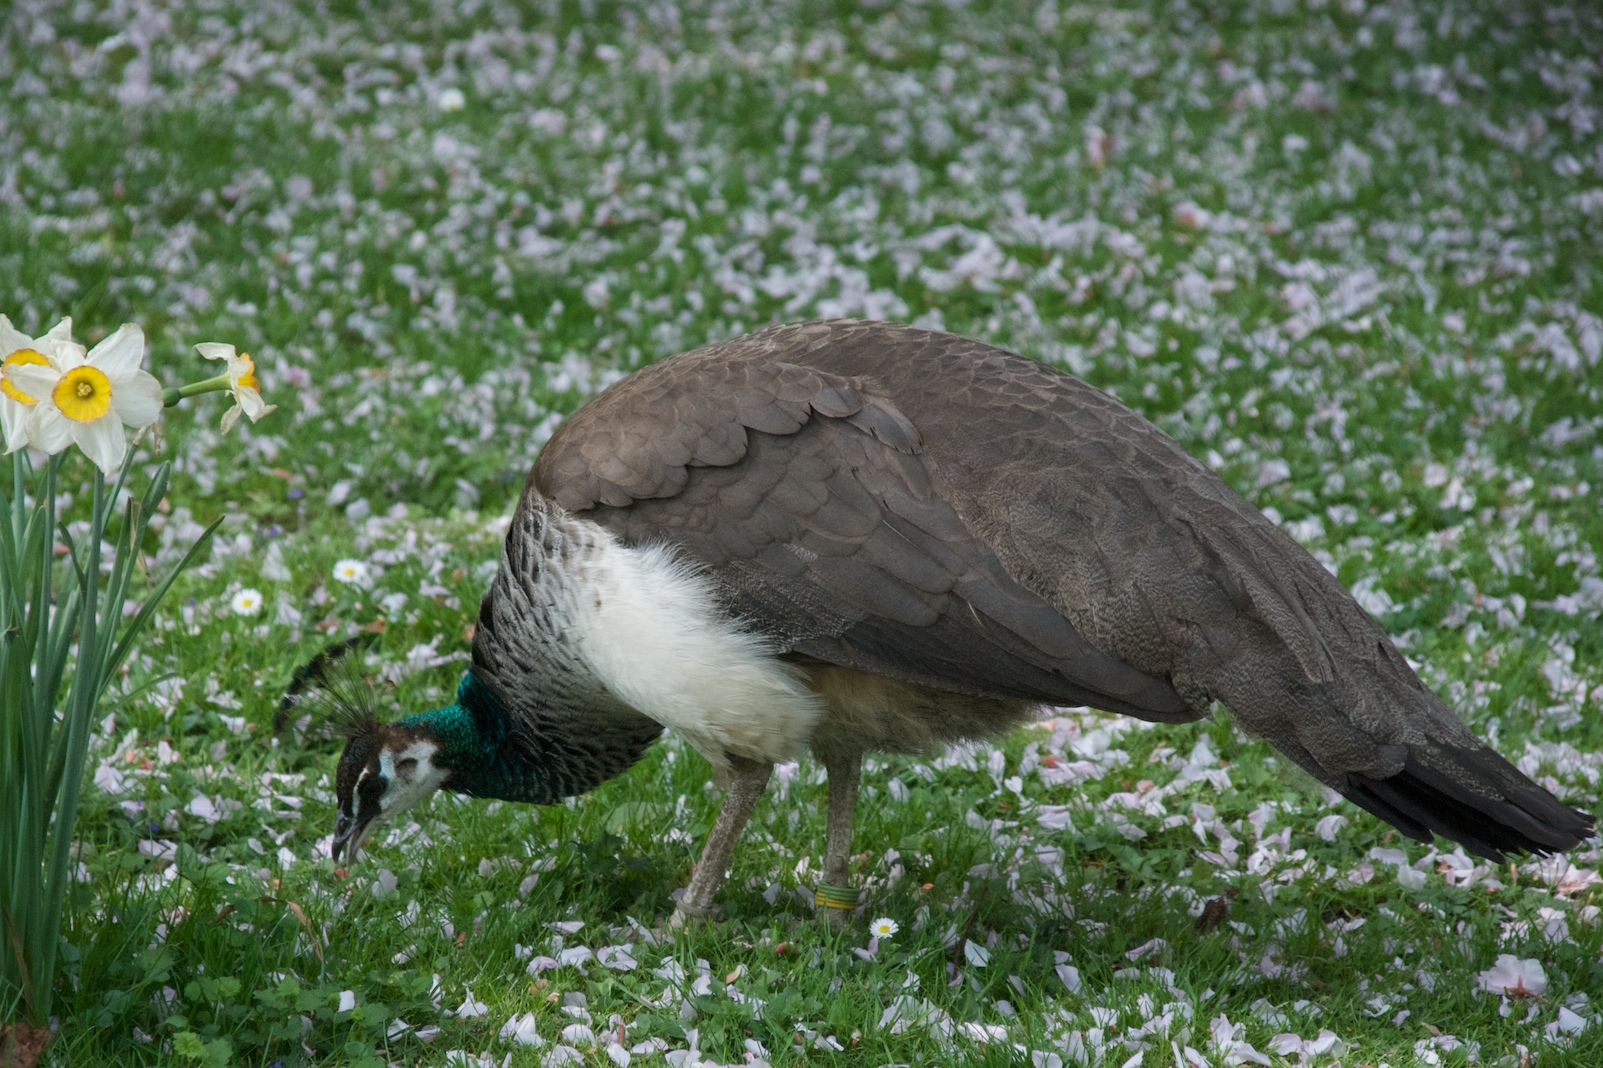 how to catch a peahen